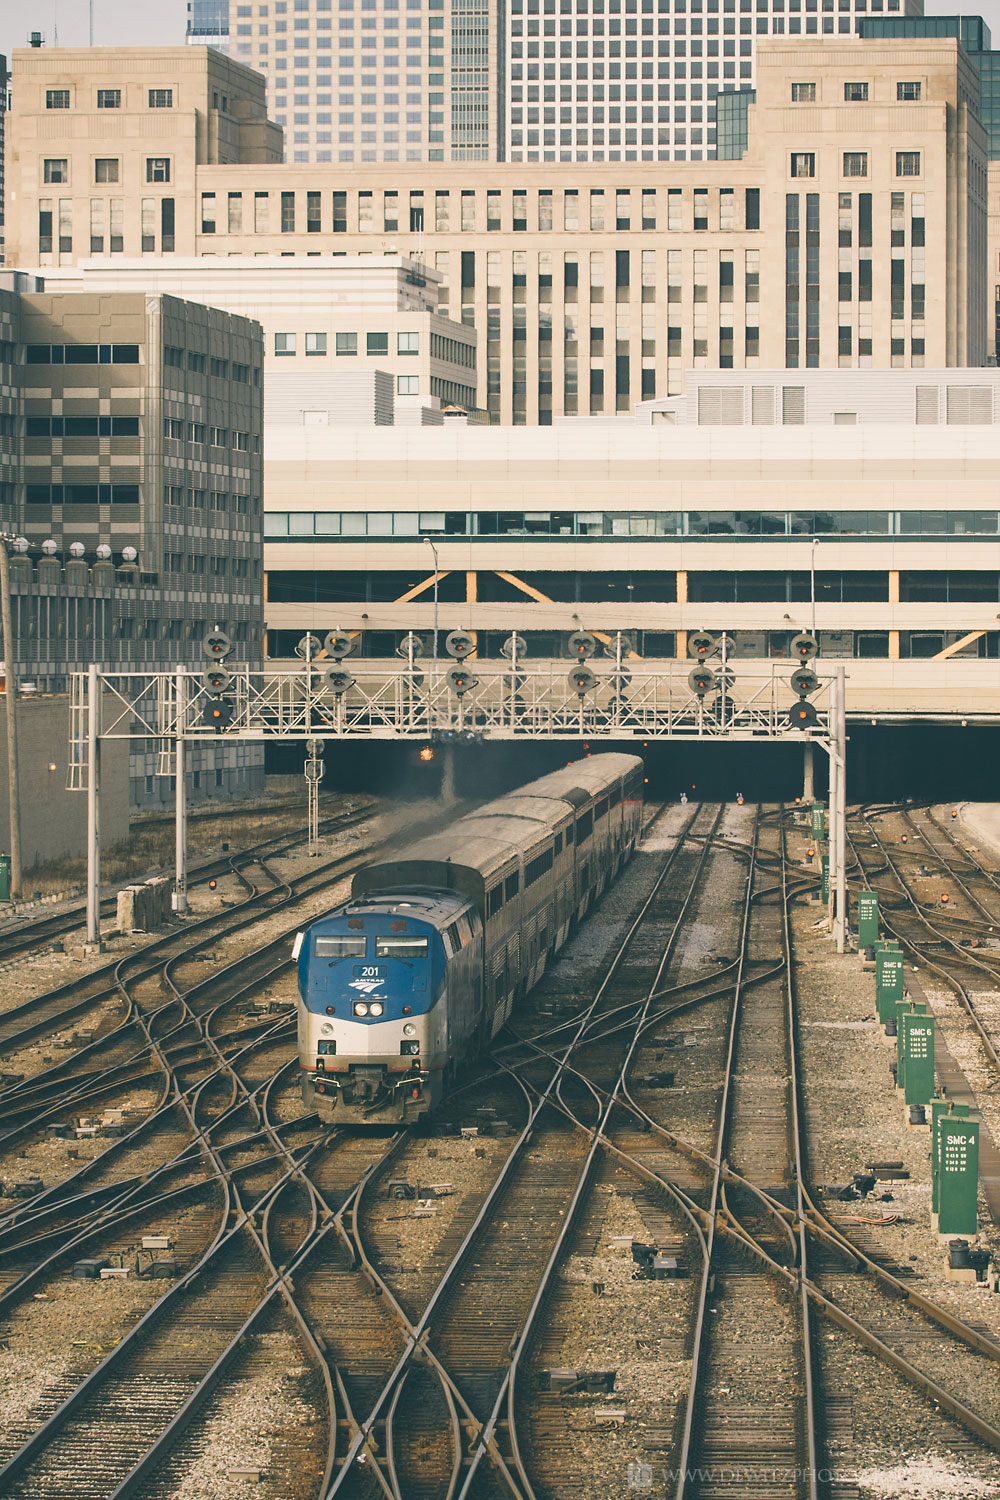 The Infrastructure that Feeds Chicago Union Station - Amtrak Complex Switch and Track Layout